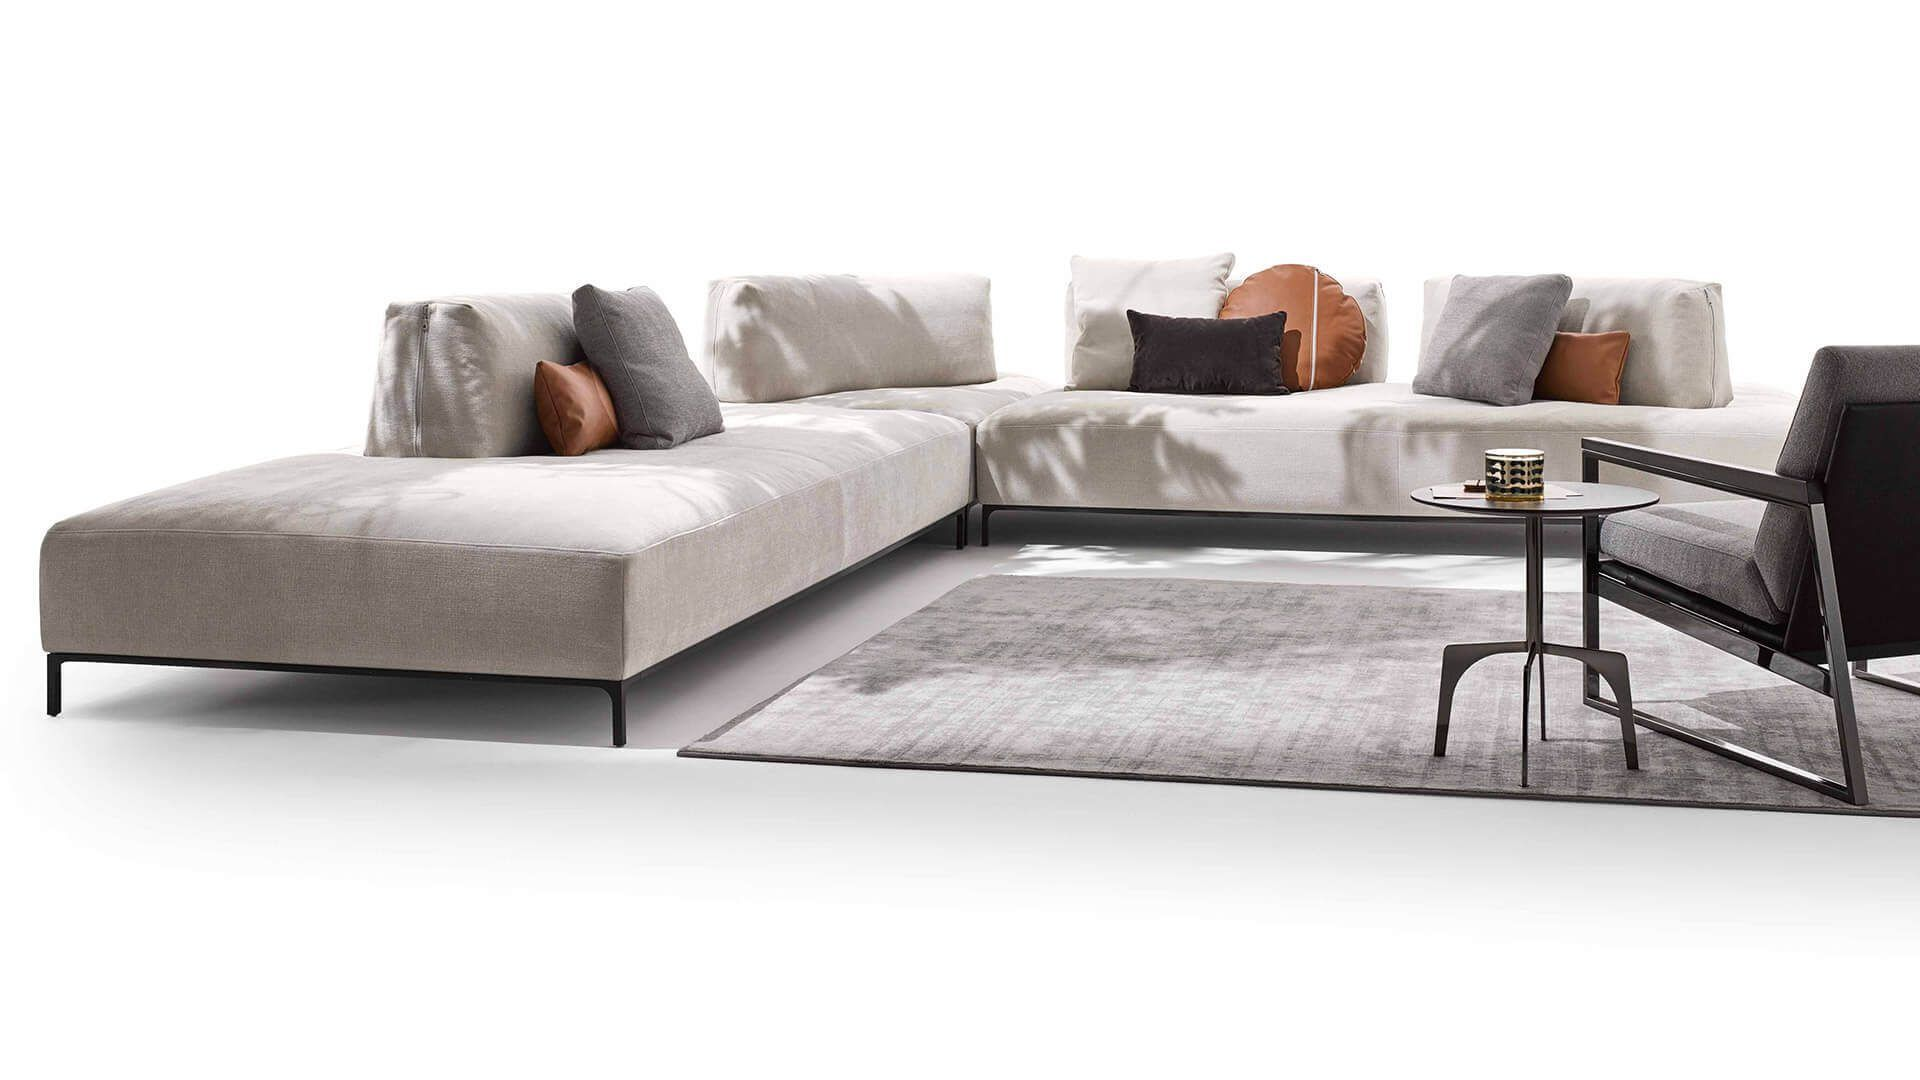 Italian Leather Sofas Beds And Armchair Ditre Italia Italian Leather Sofa Leather Sofa Fabric Sofa